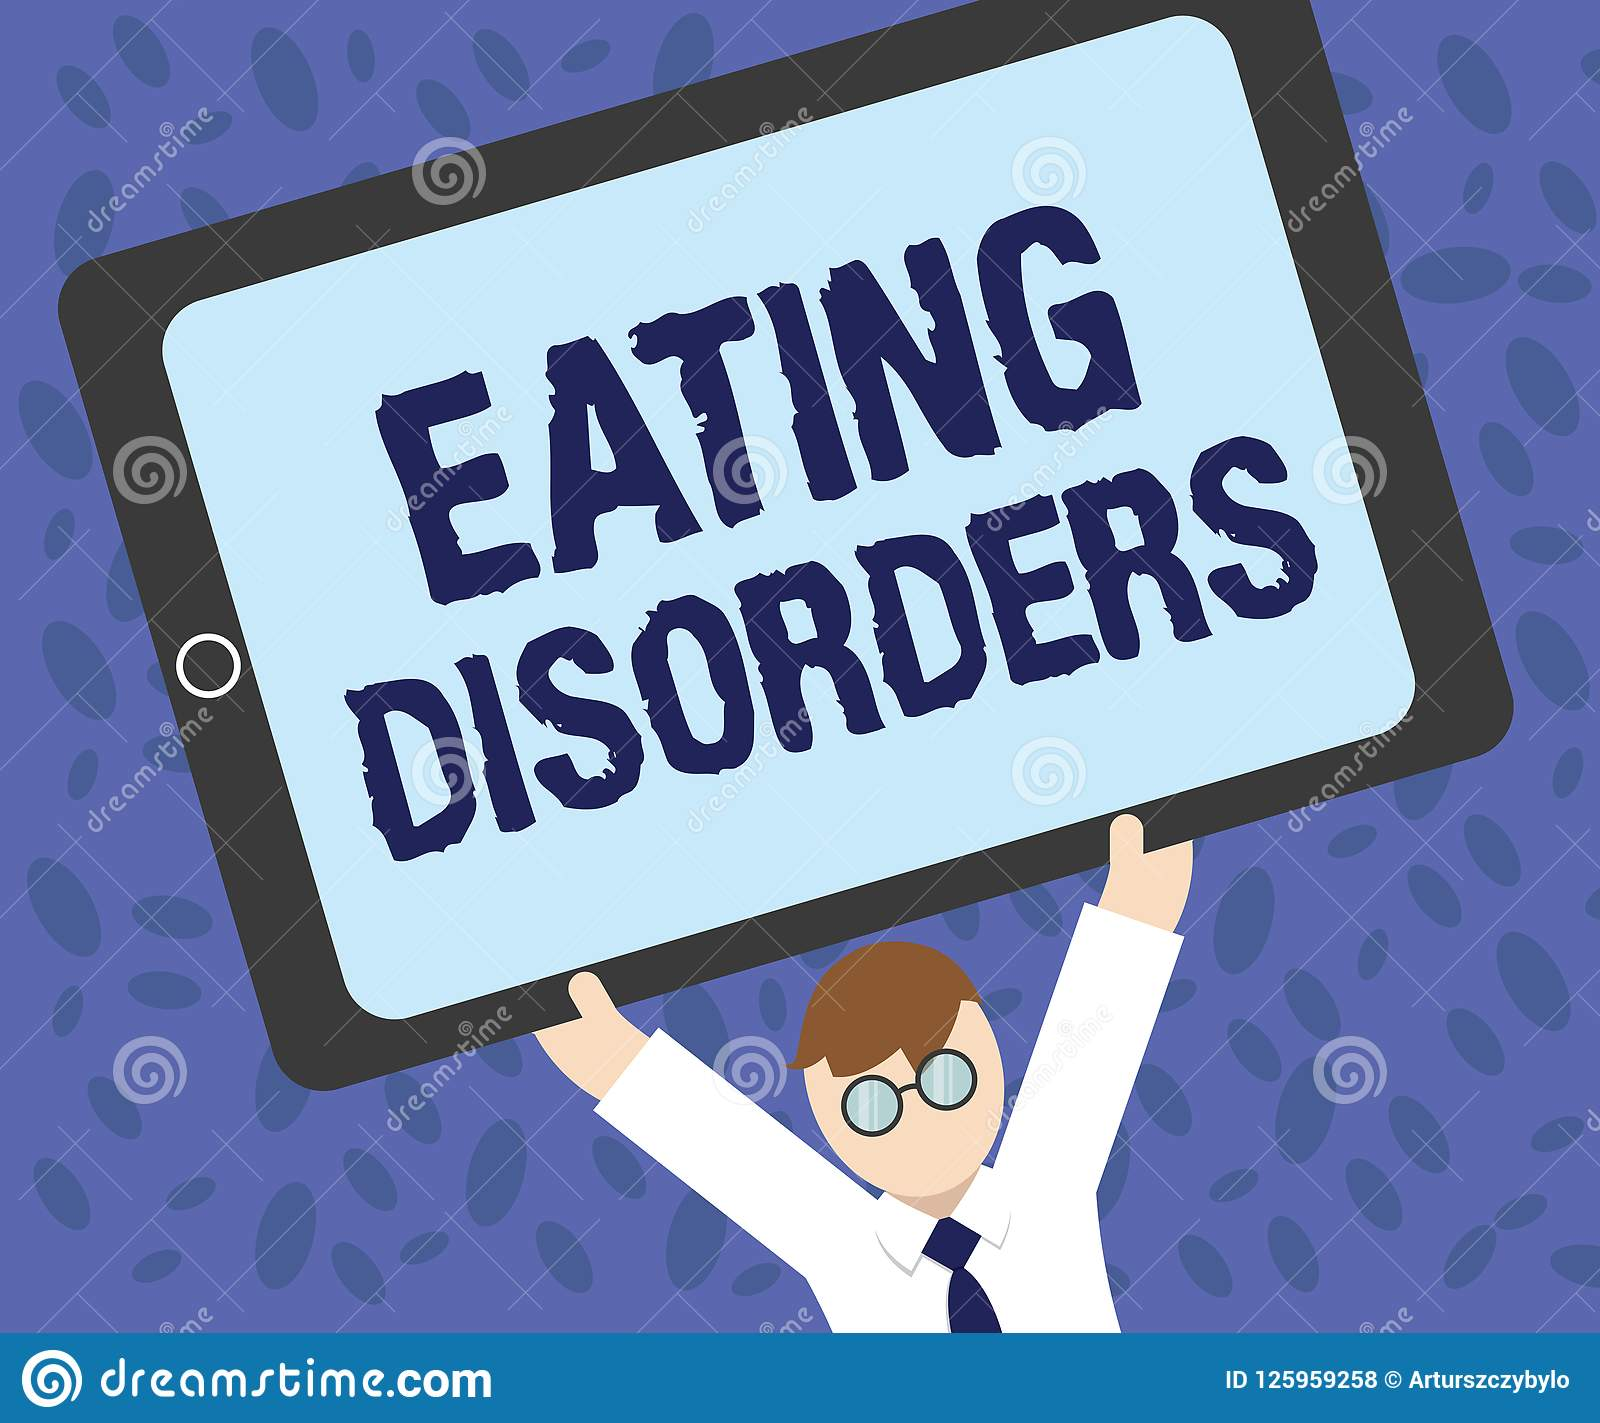 Essay about eating disorder